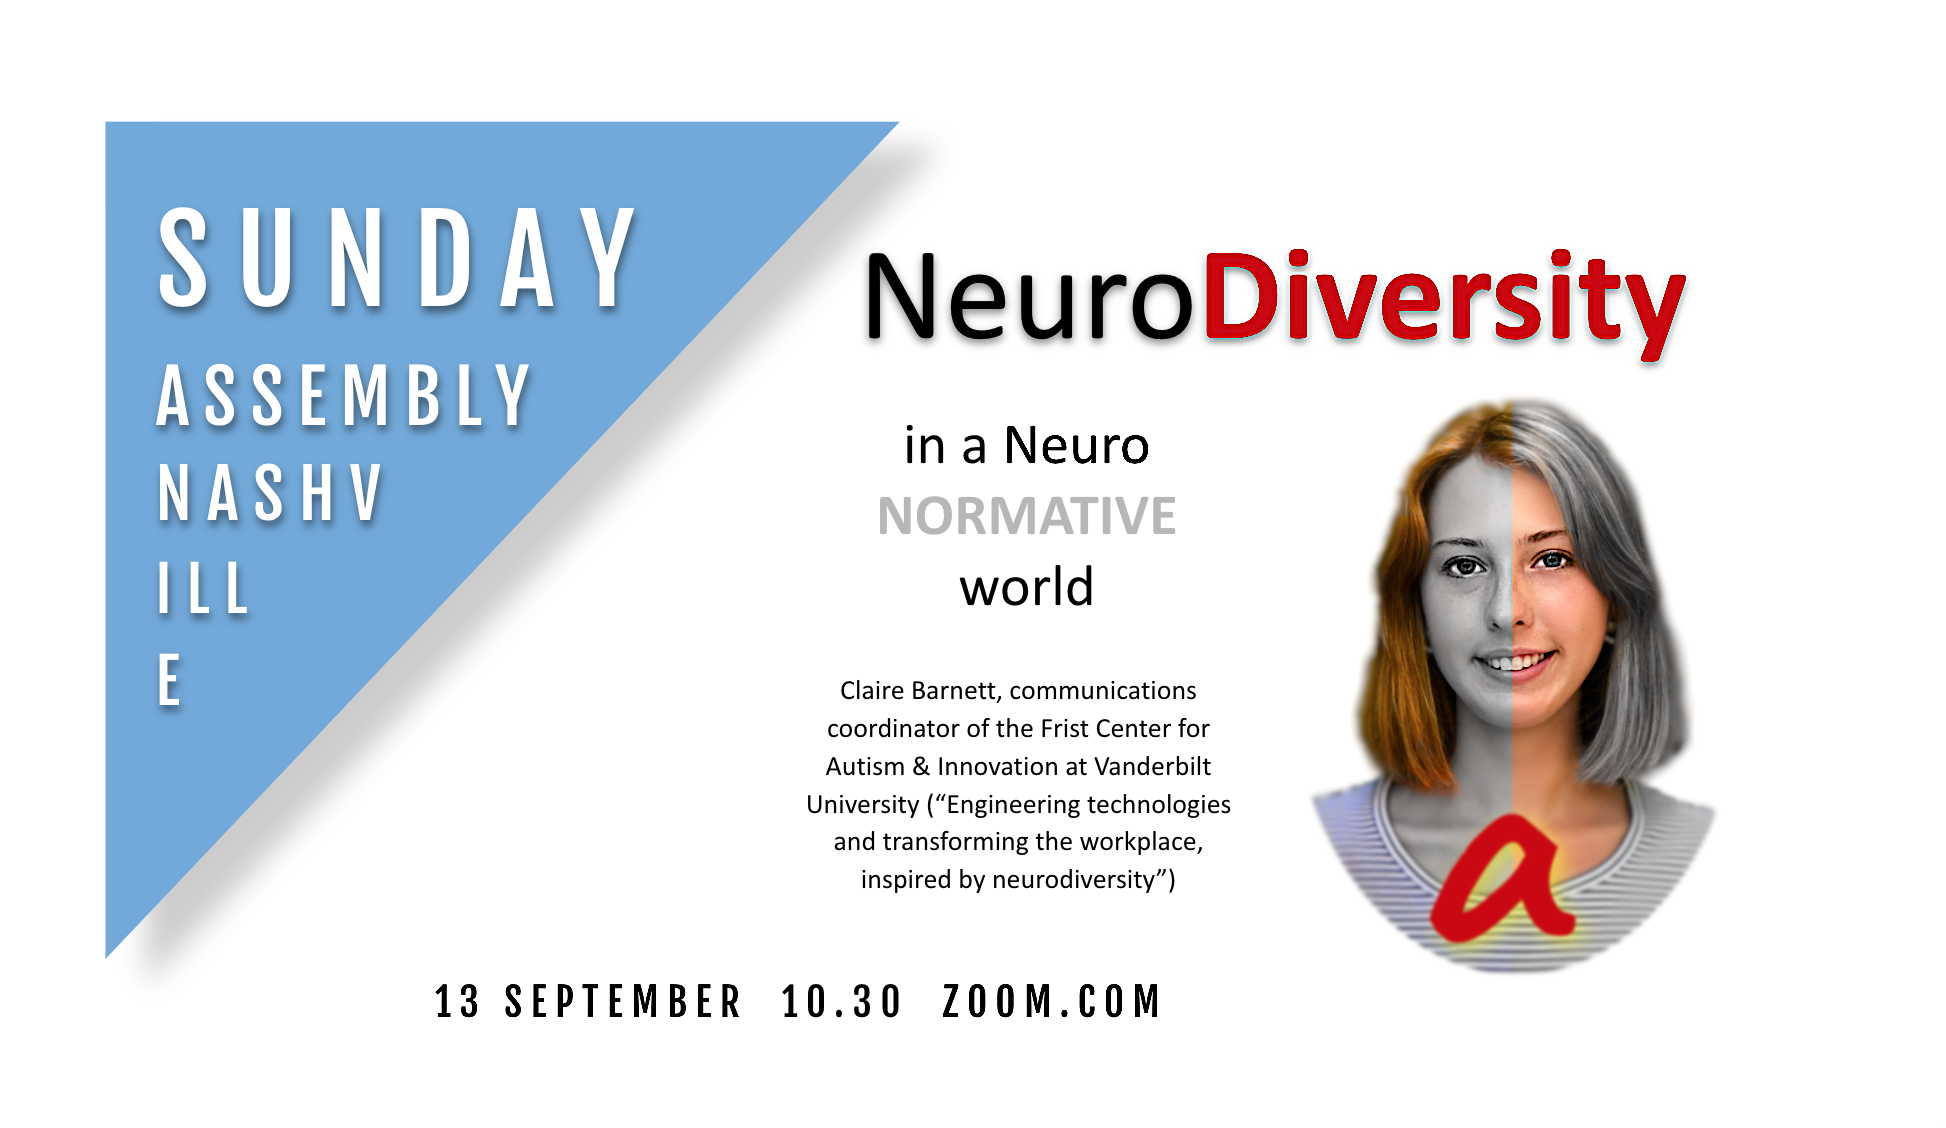 Claire Barnett on NeuroDiversity in a NeuroNormative World sep 2020